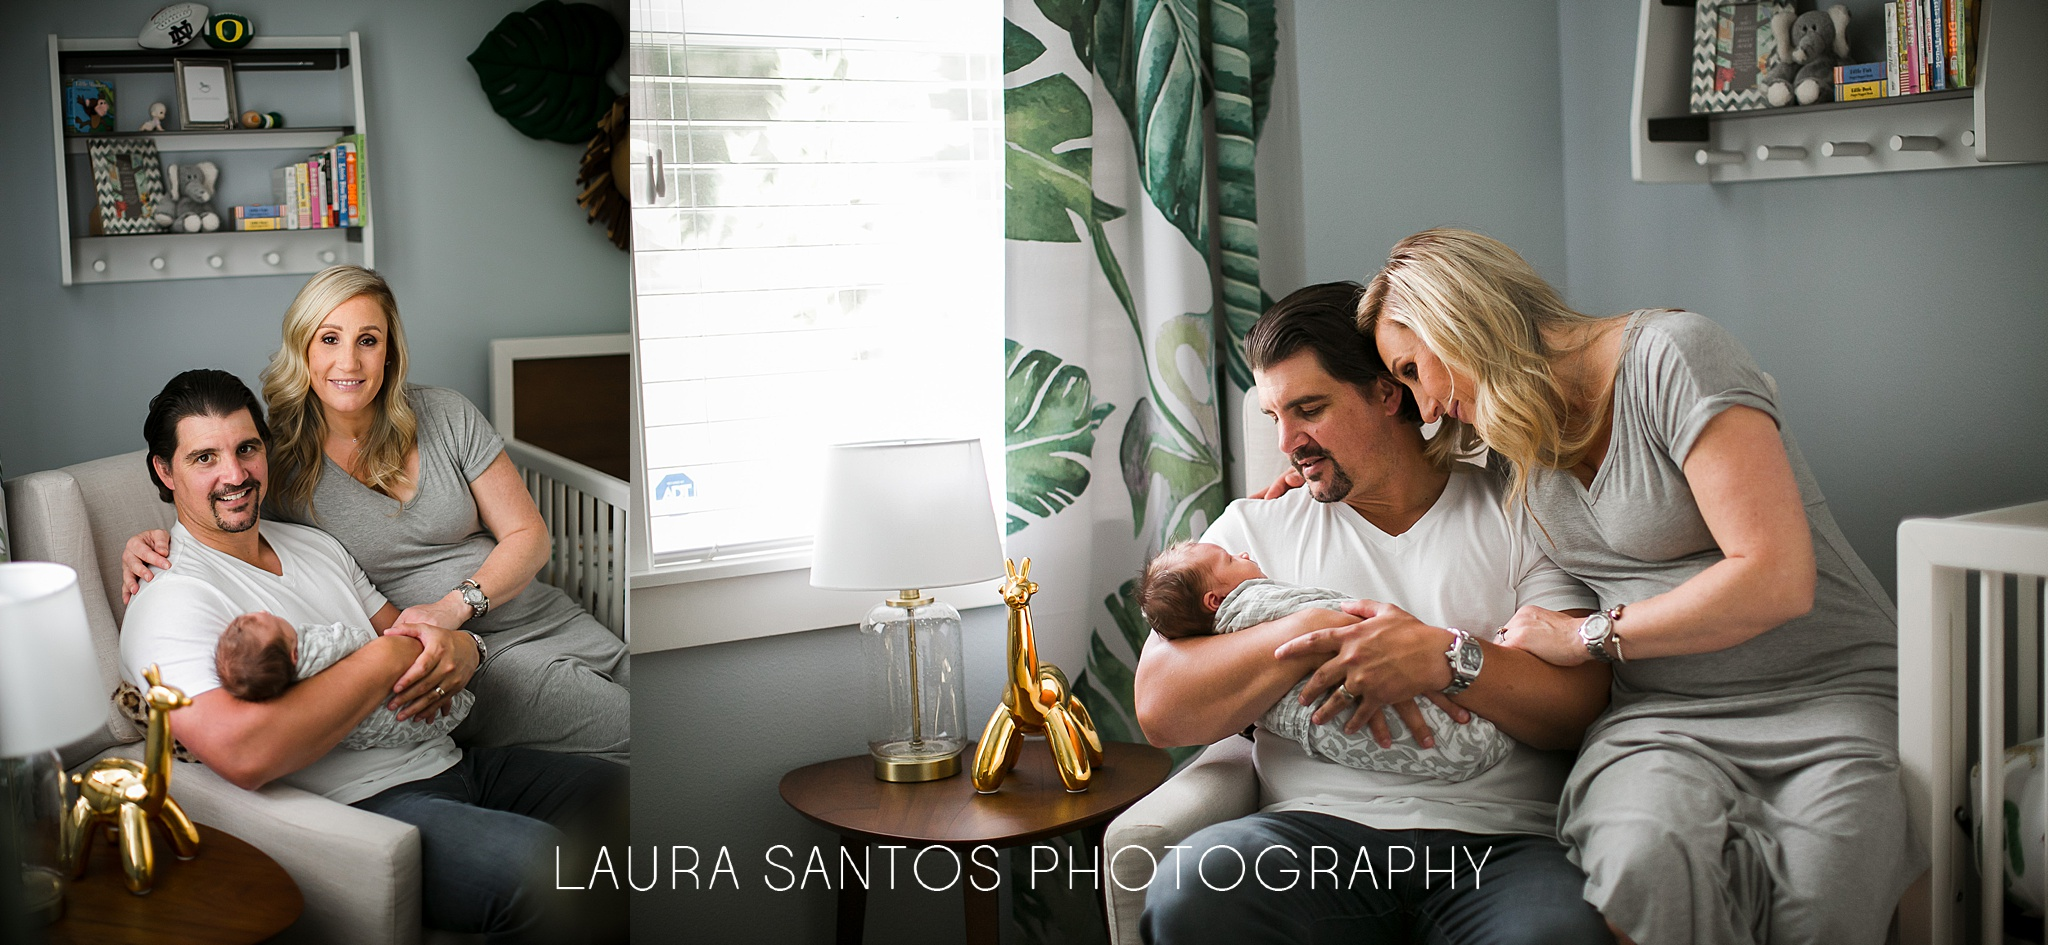 Laura Santos Photography Portland Oregon Family Photographer_1095.jpg